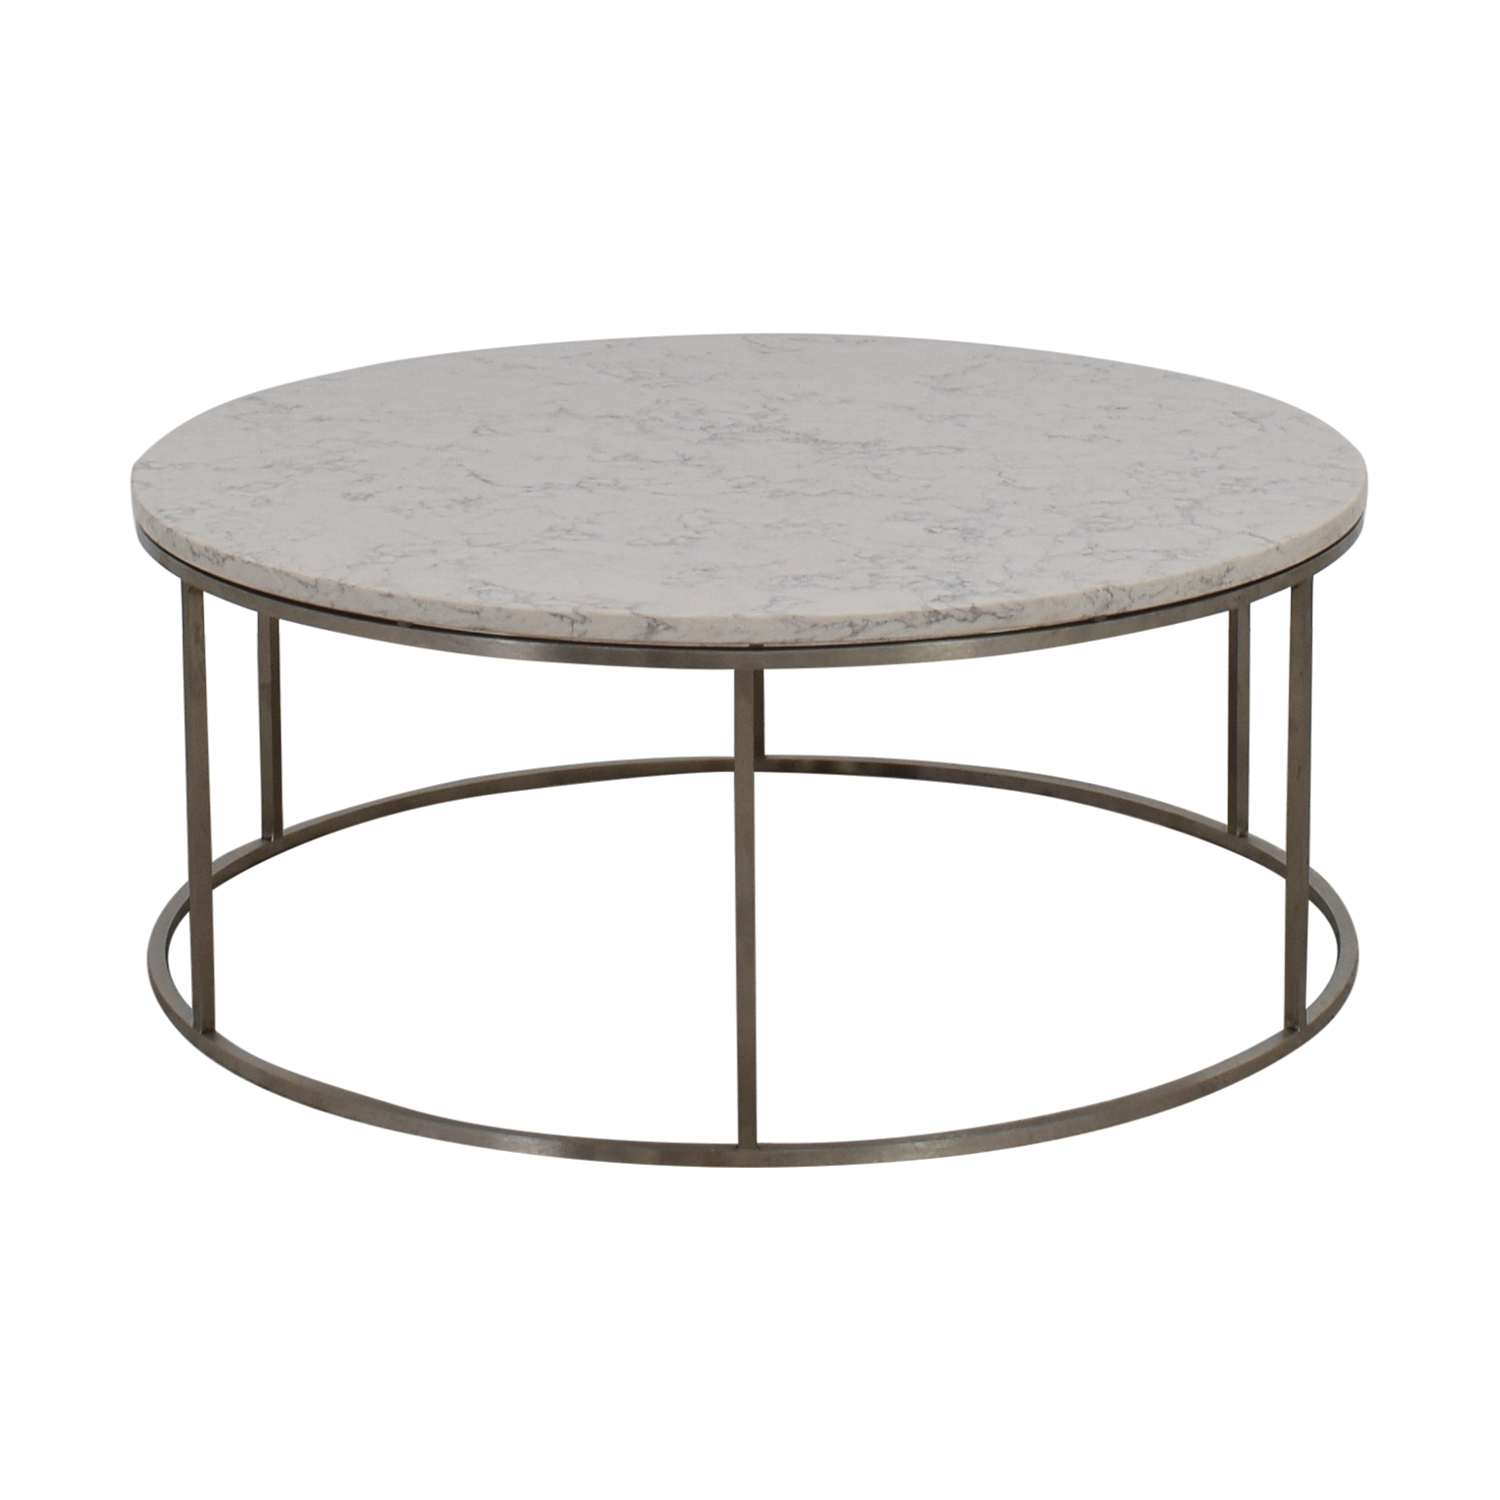 Room & Board Room & Board Round Marble Top Coffee Table coupon